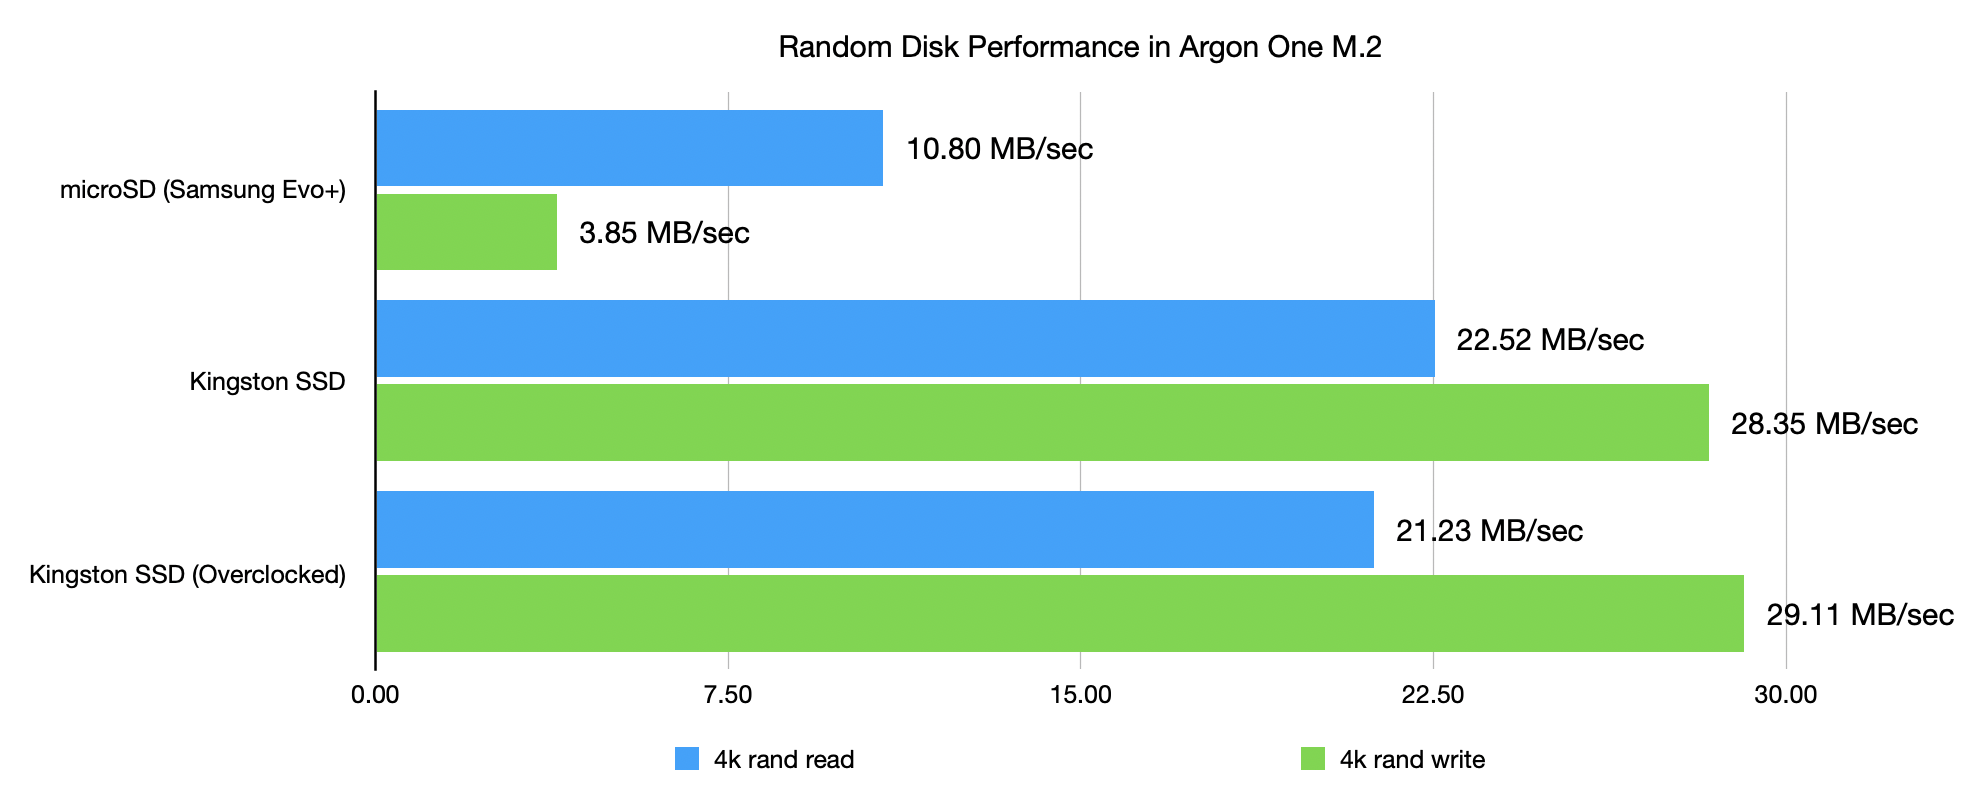 Argon One M.2 SSD vs microSD performance - random